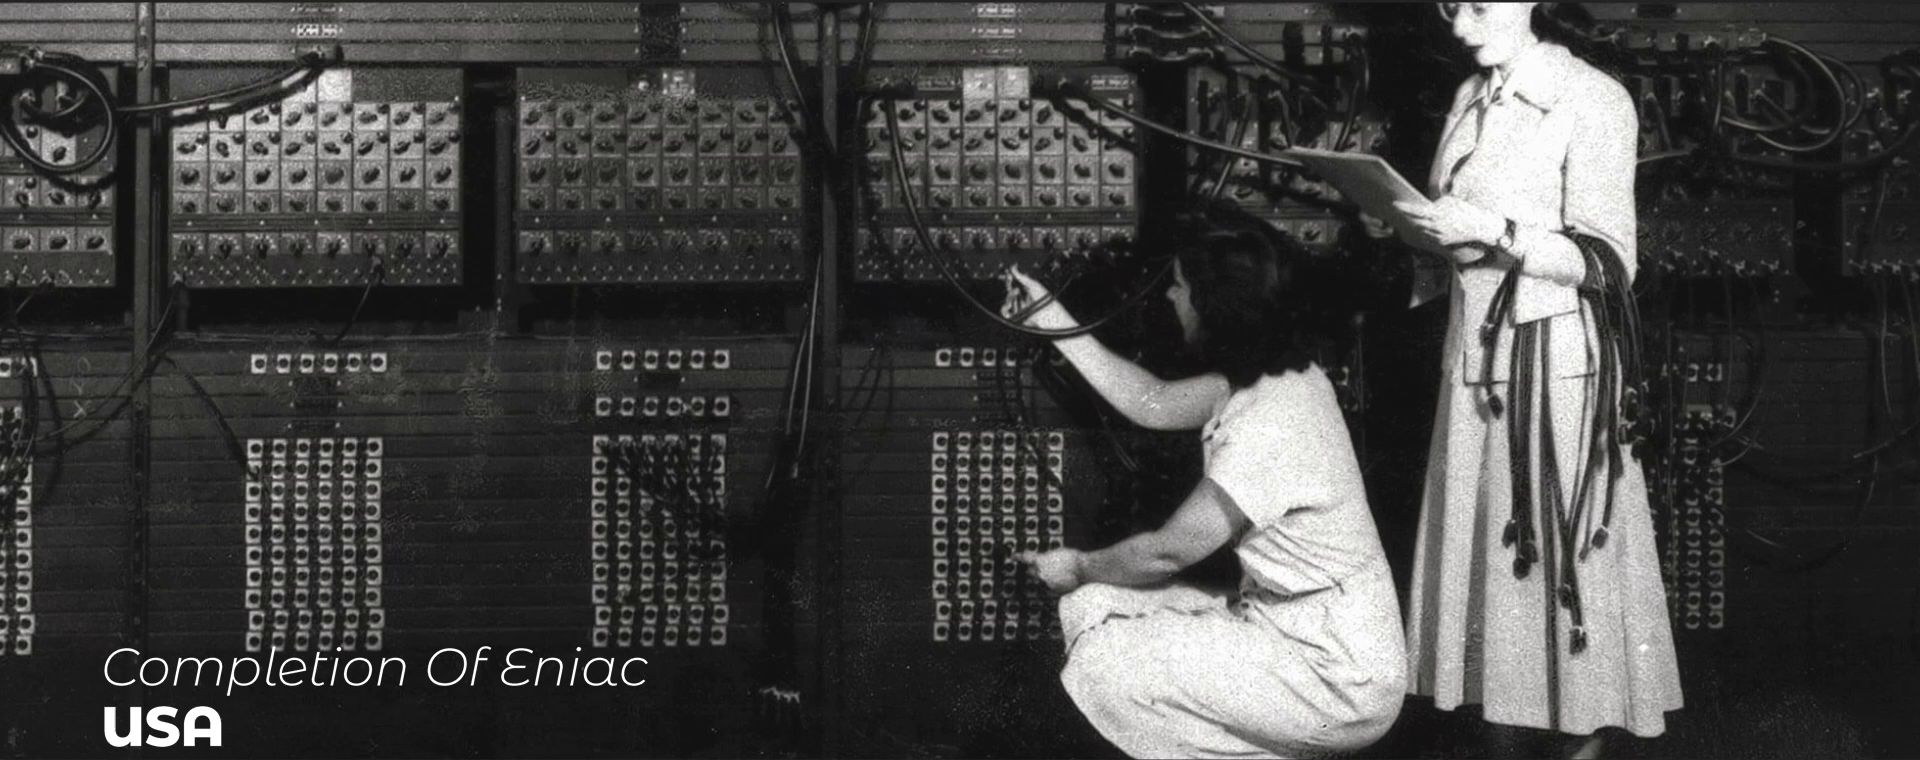 COMPLETION OF ENIAC